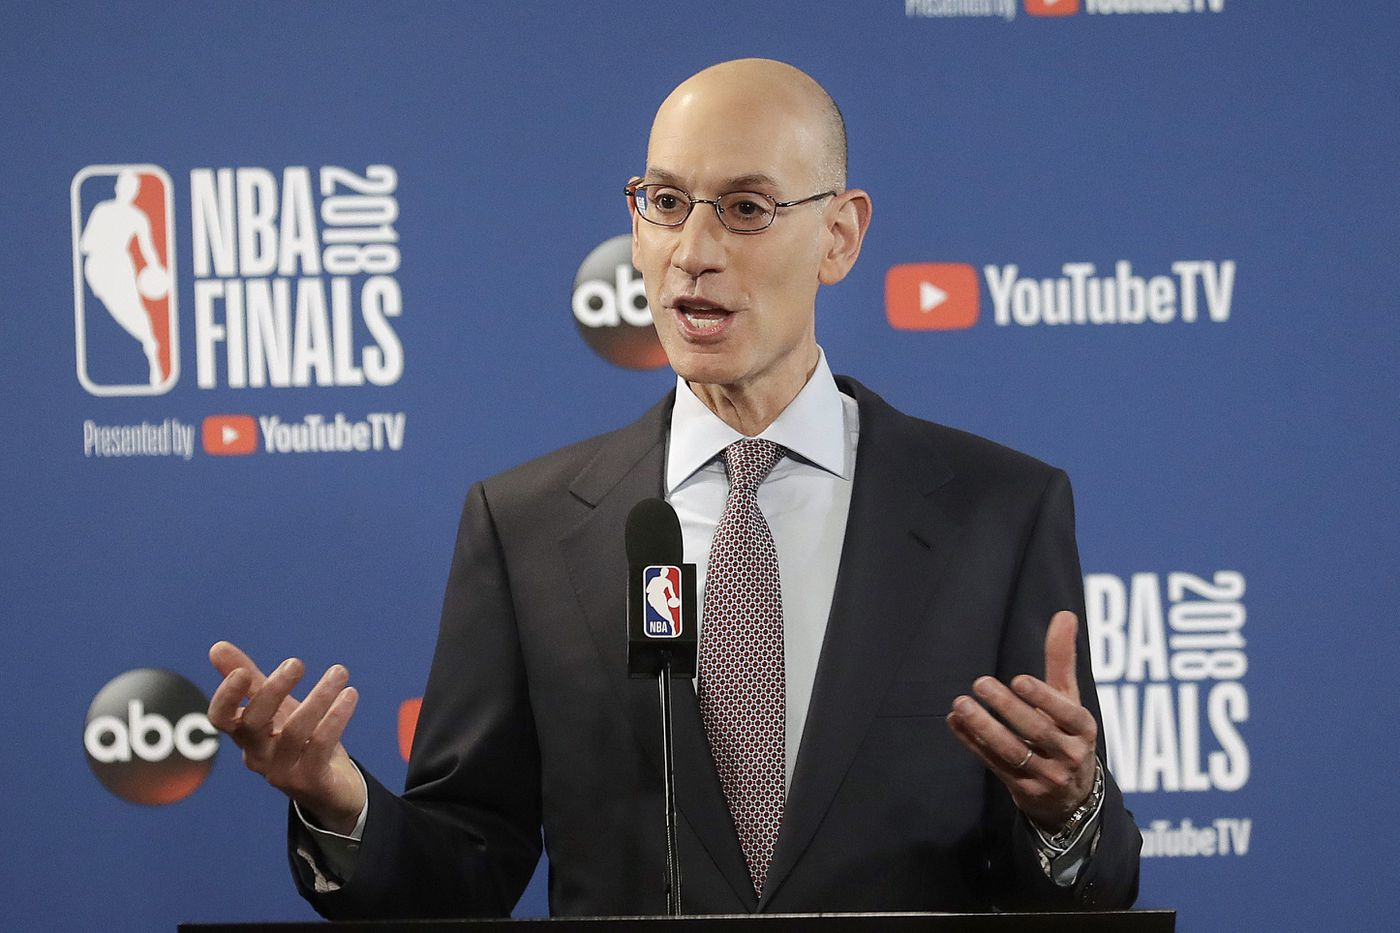 NBA Board of Governors discusses changing the playoff format